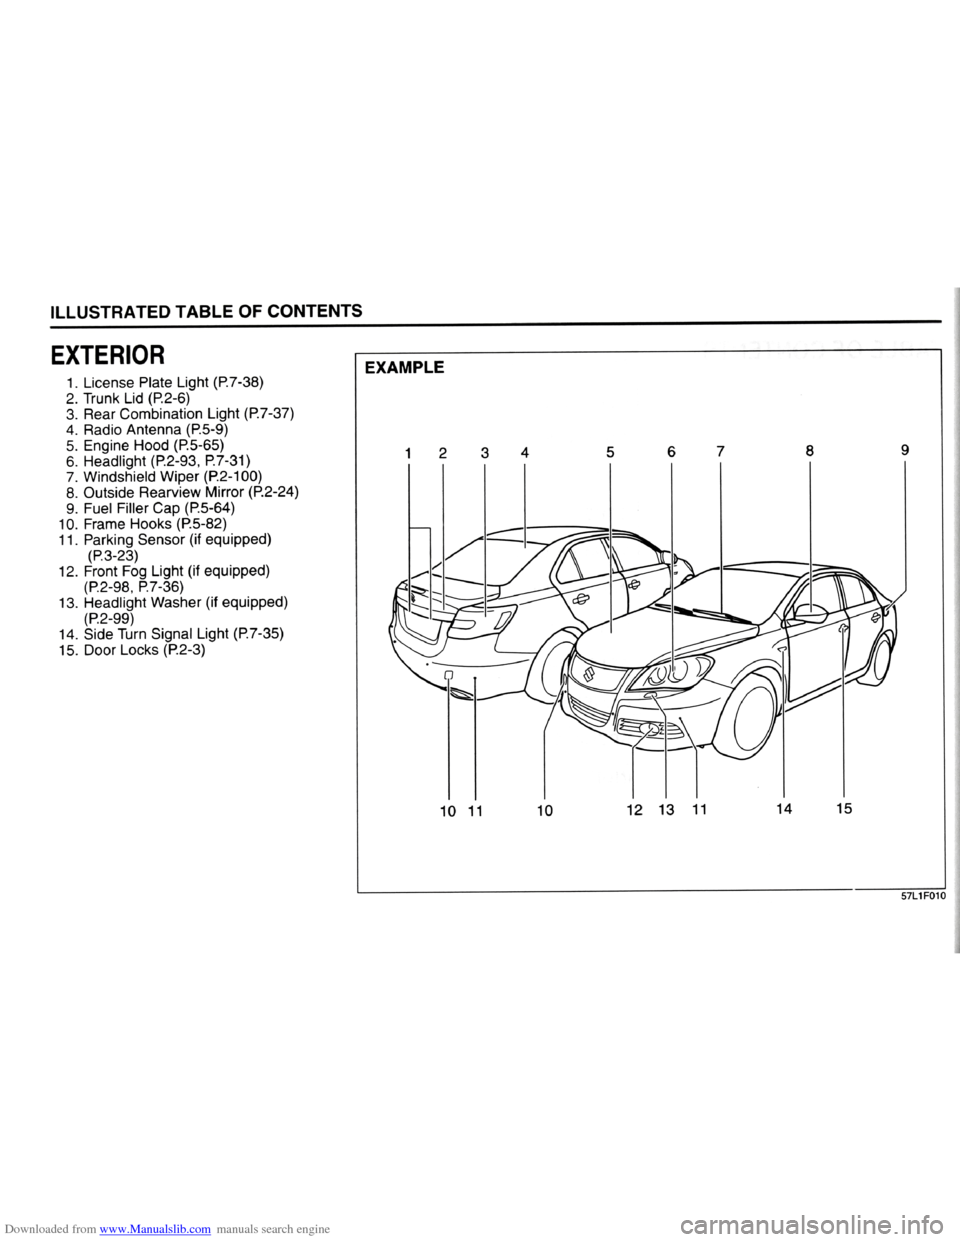 2004 suzuki vitara owners manual